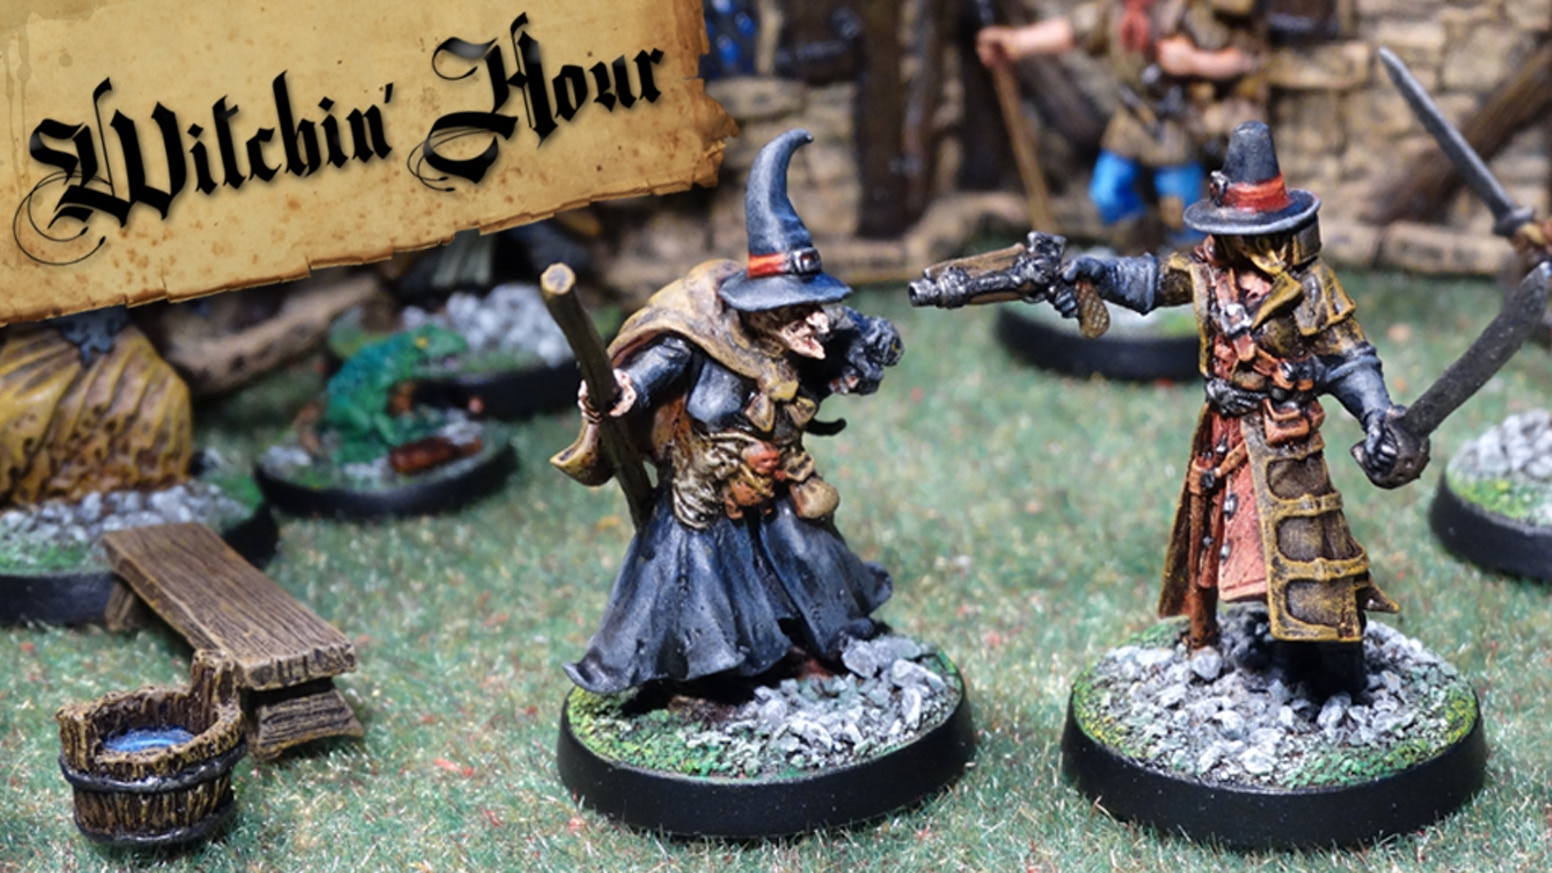 A tabletop skirmish game pitting Witch Hunters against Witches.